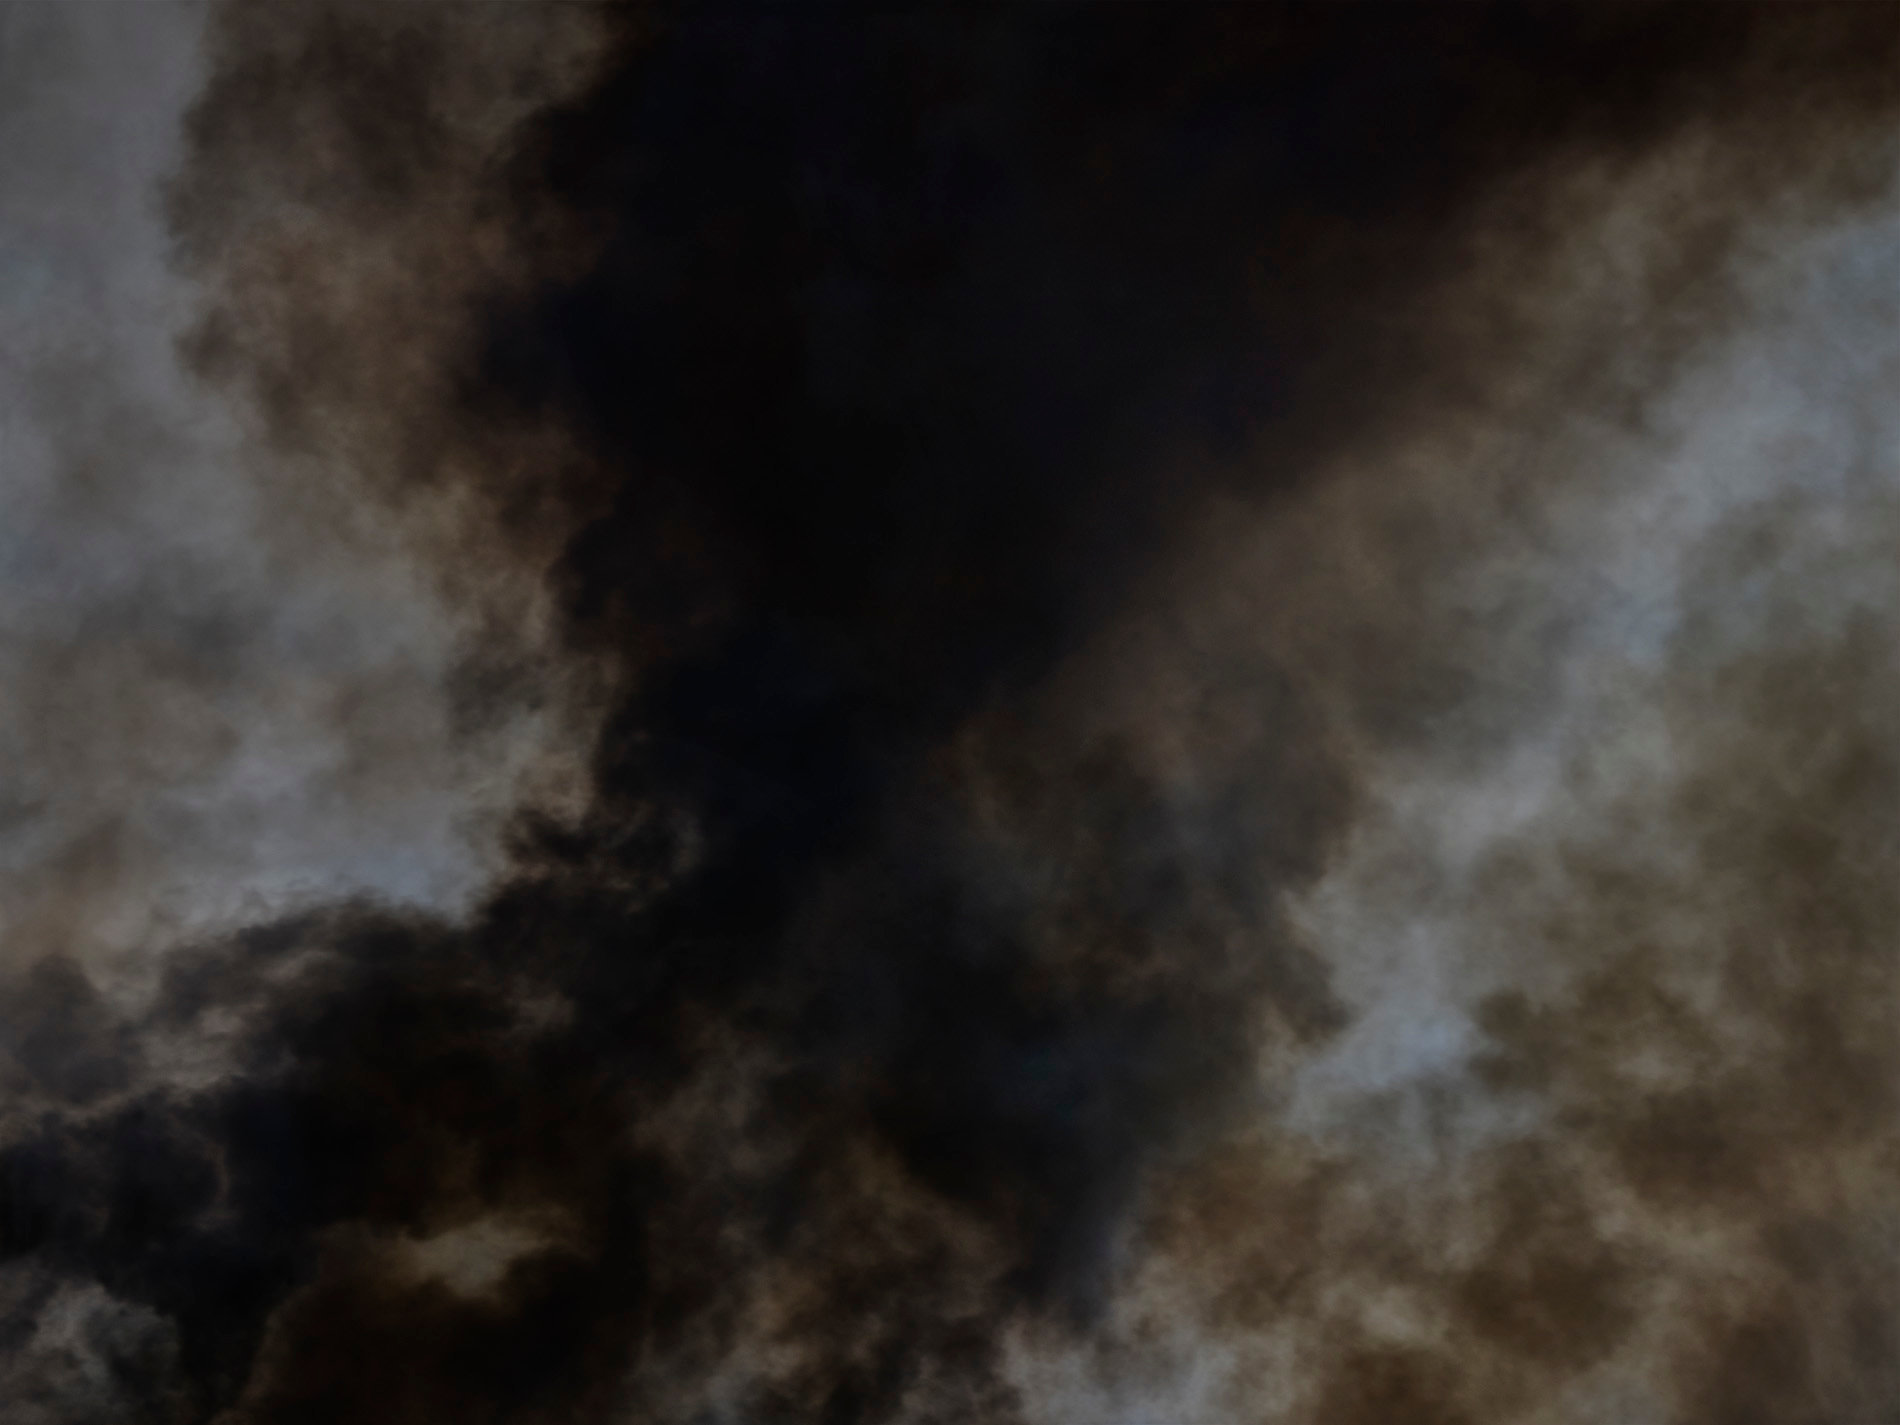 Black smoke fire in the air